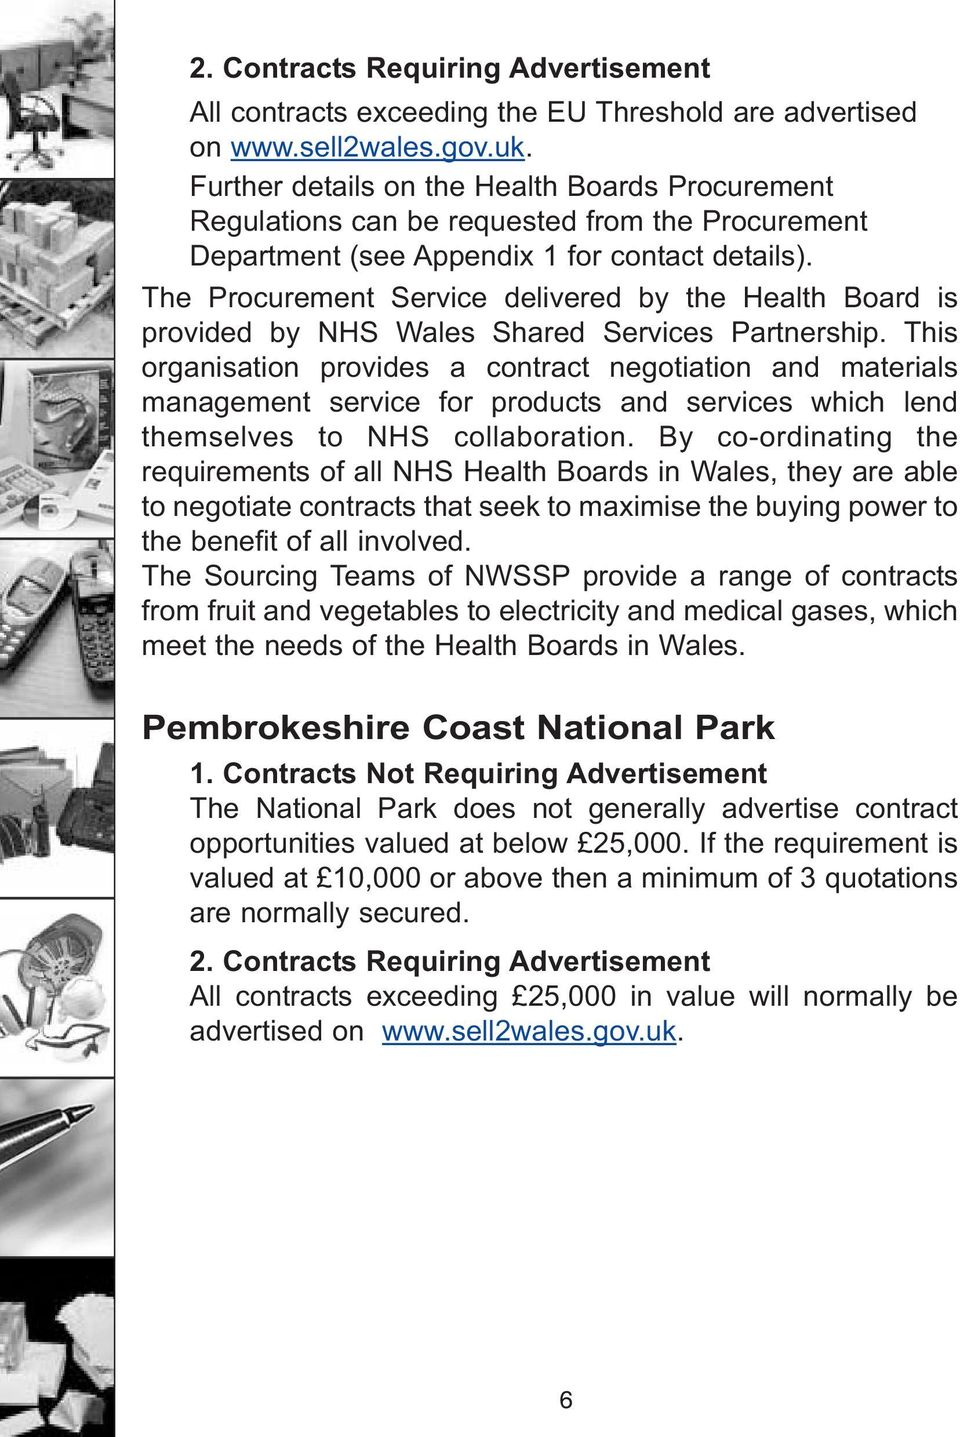 The Procurement Service delivered by the Health Board is provided by NHS Wales Shared Services Partnership.